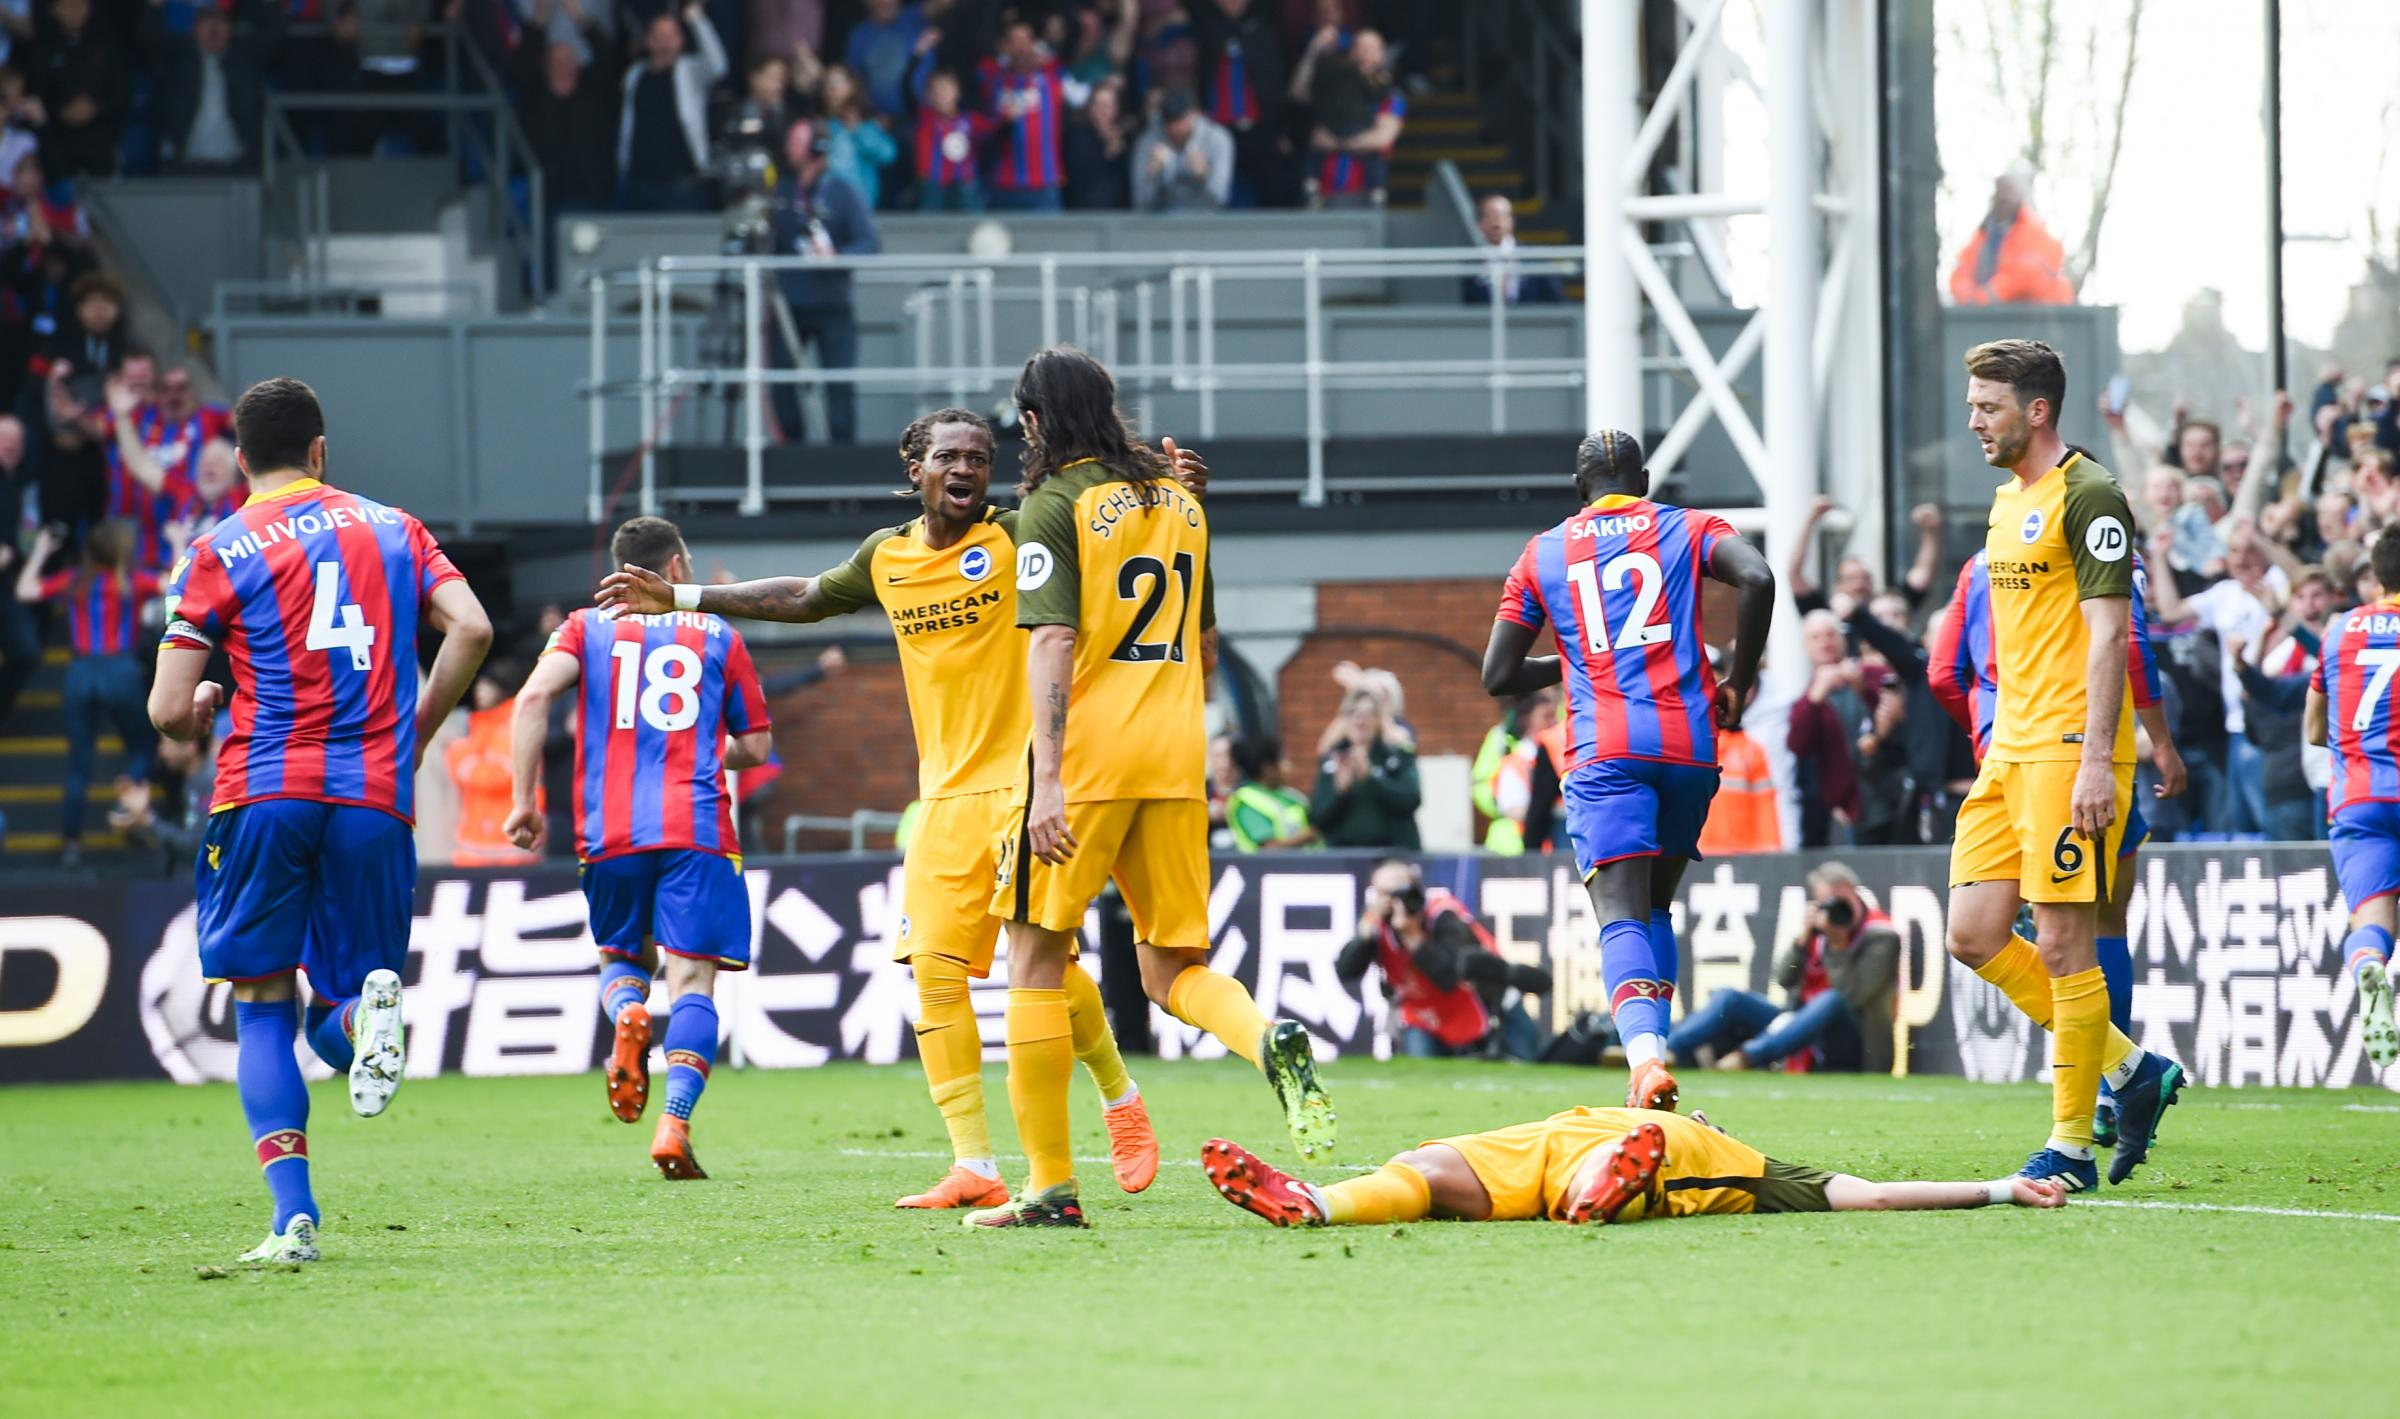 Gaetan Bong (centre) shows his dismay after poor Albion defending allows Wilfried Zaha to head in his second goal of the game. Picture Simon Dack